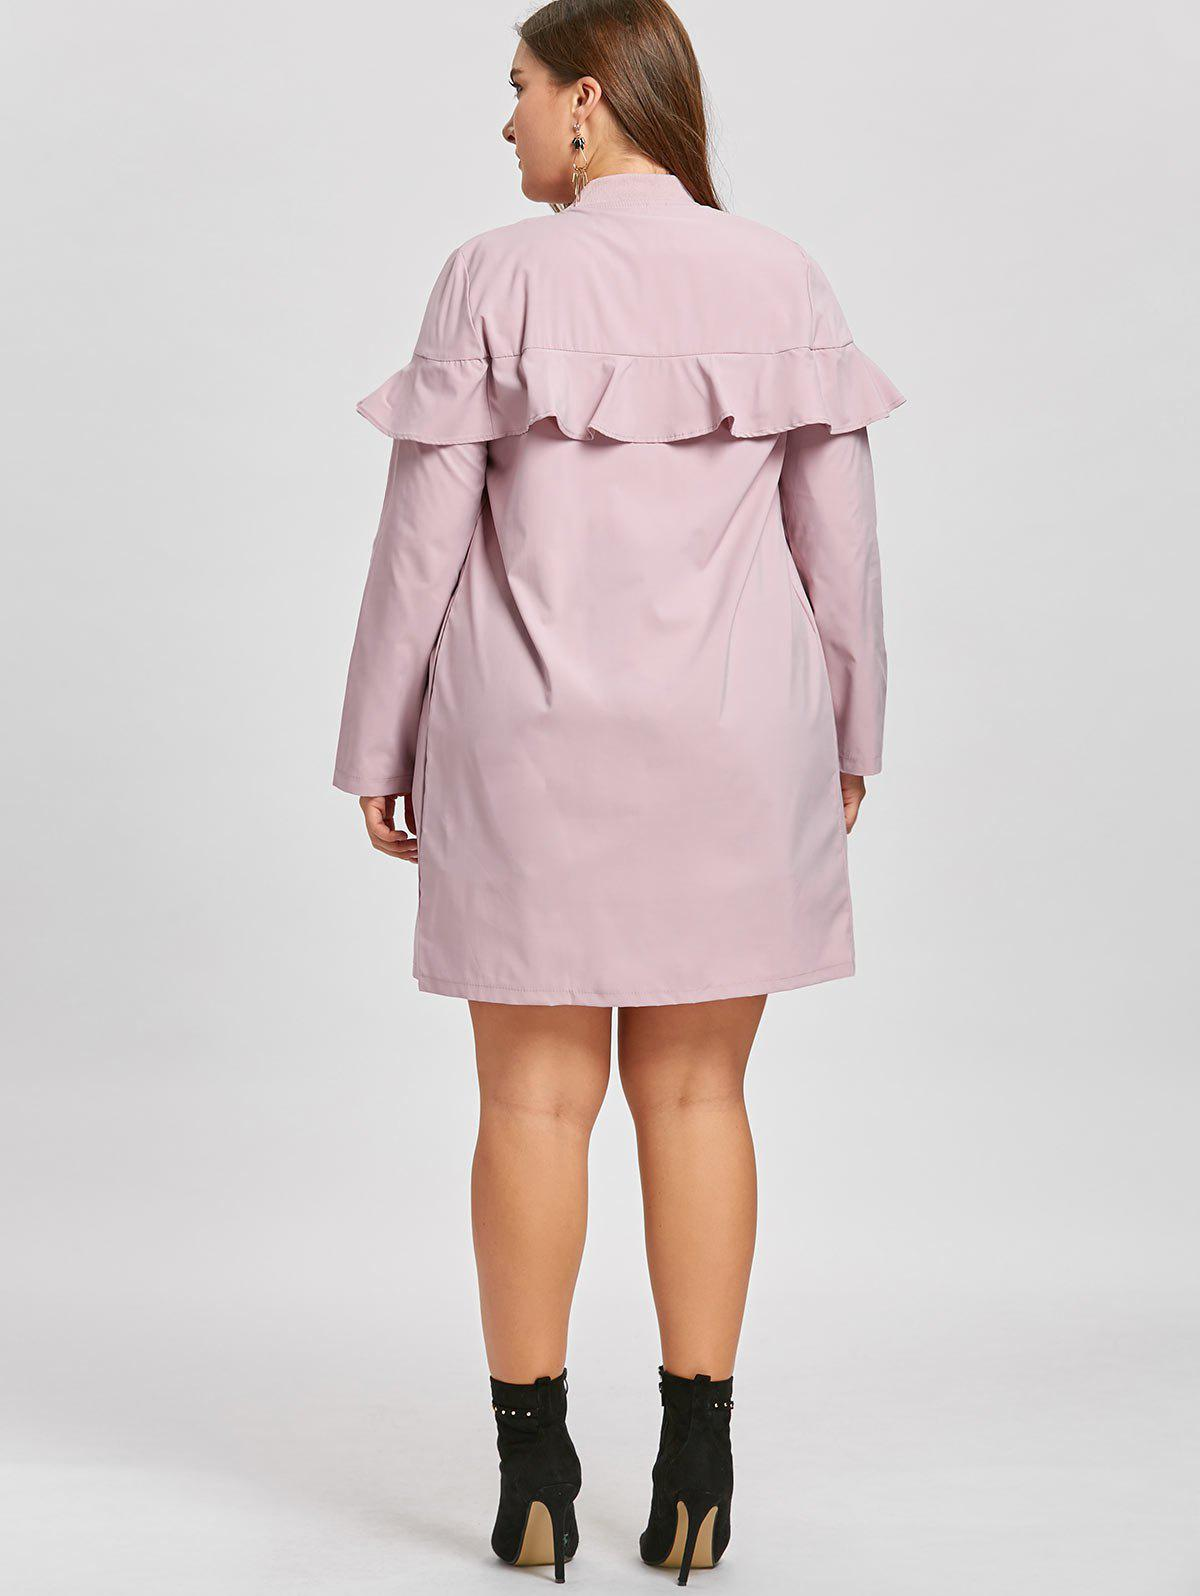 Zip Up Plus Size Ruffle Trench Coat - PINK 3XL